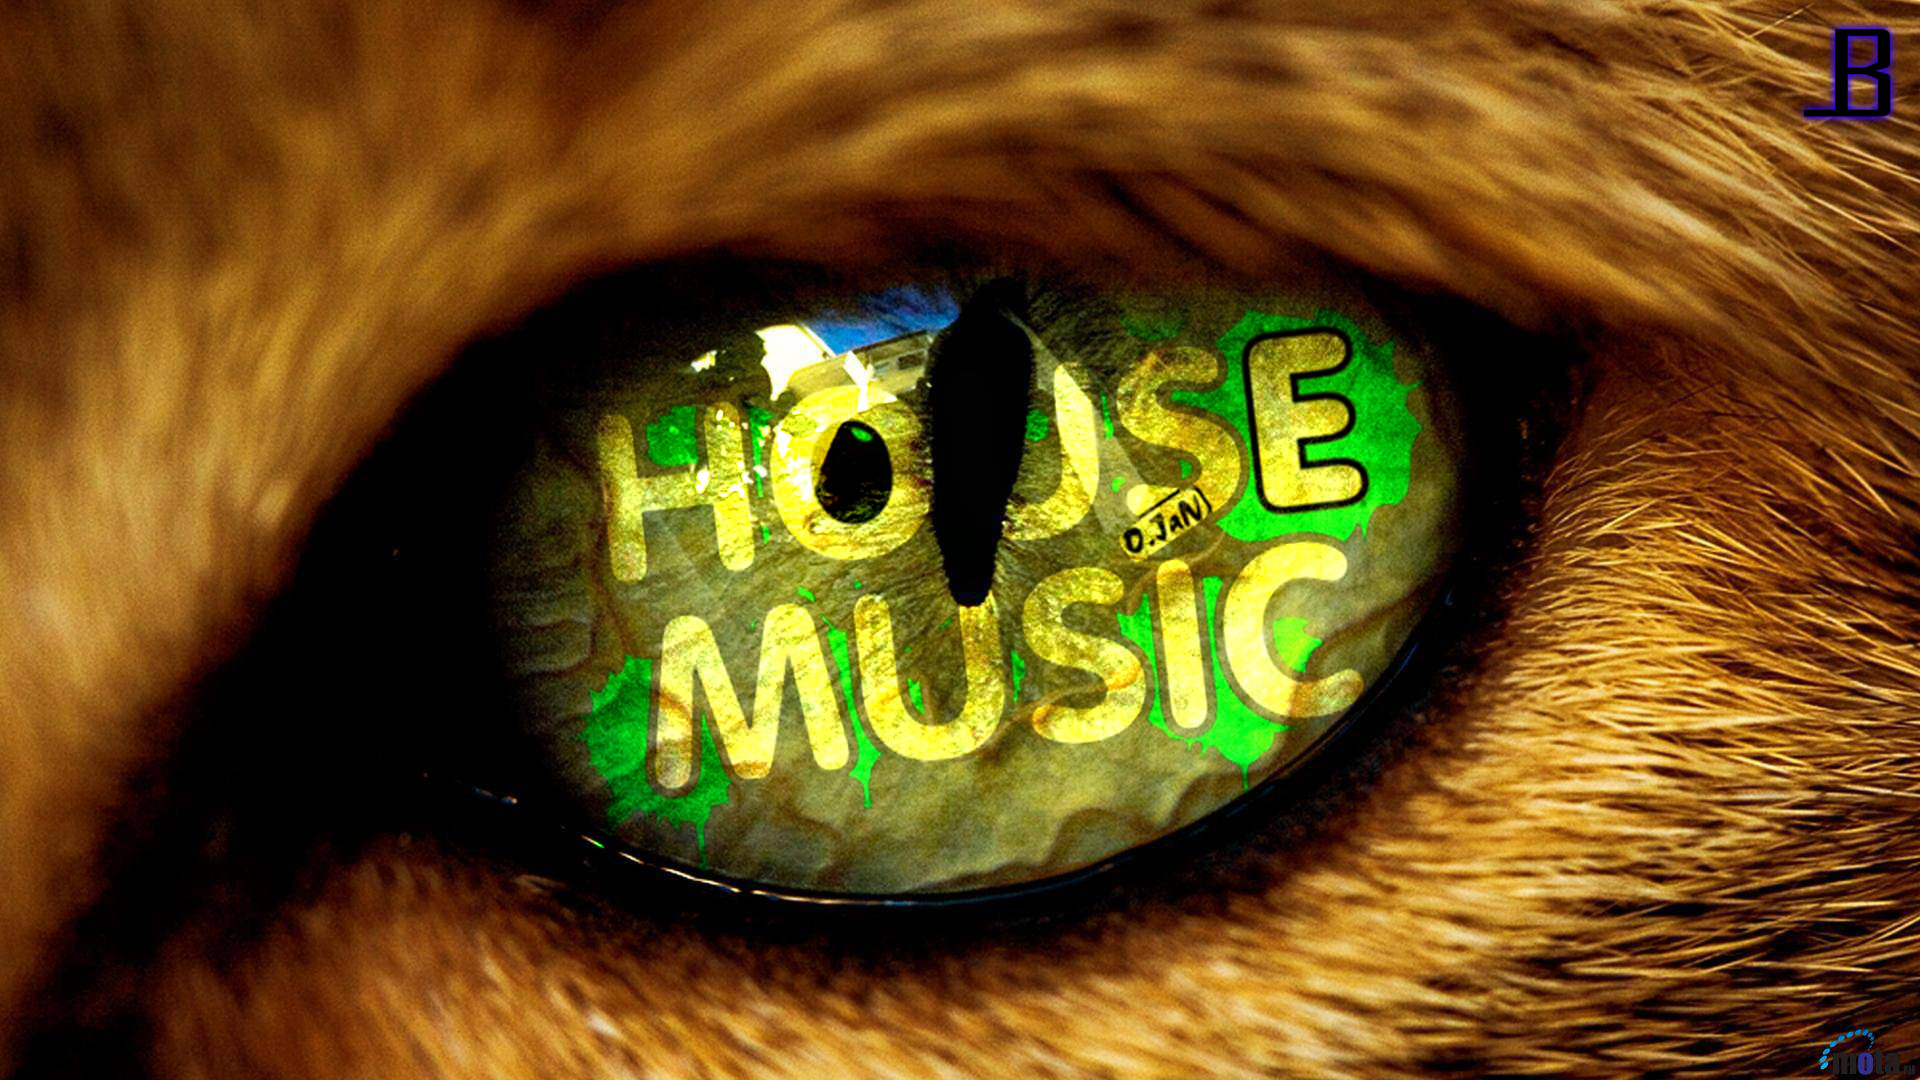 House music wallpaper hd by leadbeats on deviantart for House music house music